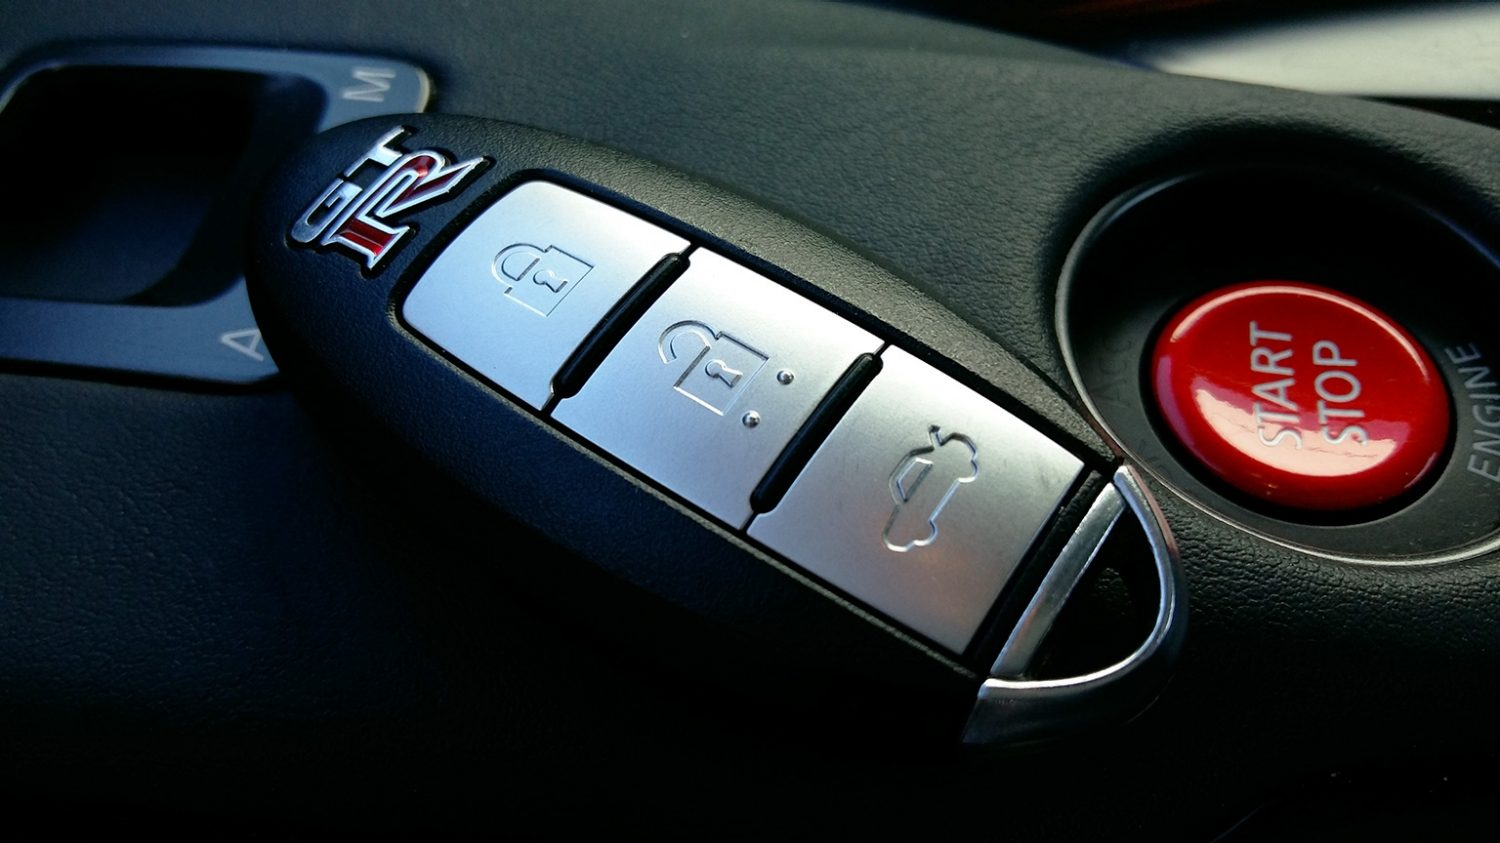 NISSAN INTELLIGENT KEY